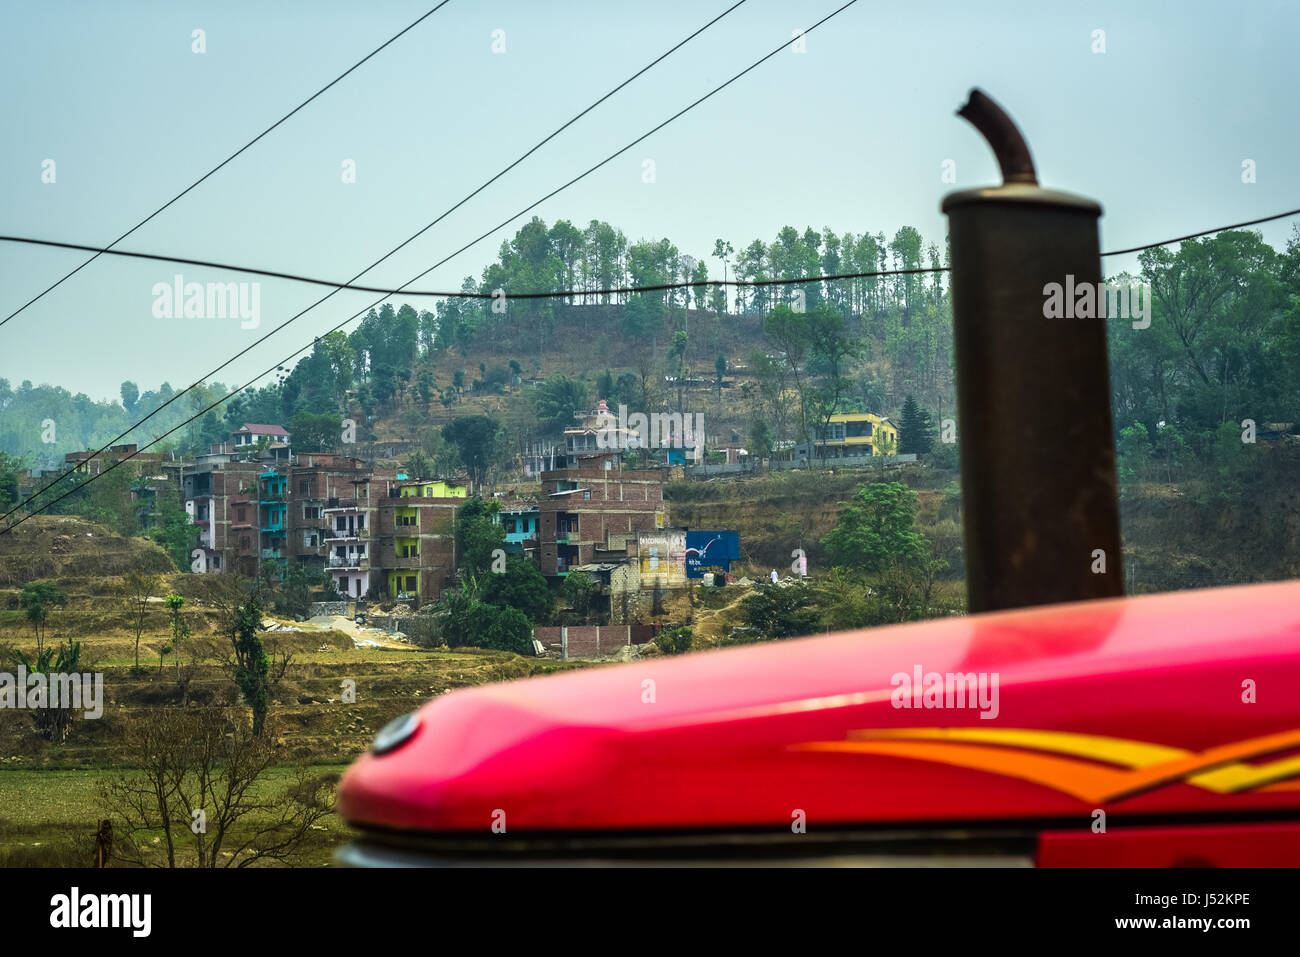 Nepali countryside with a smoke stack of a truck and power lines. - Stock Image